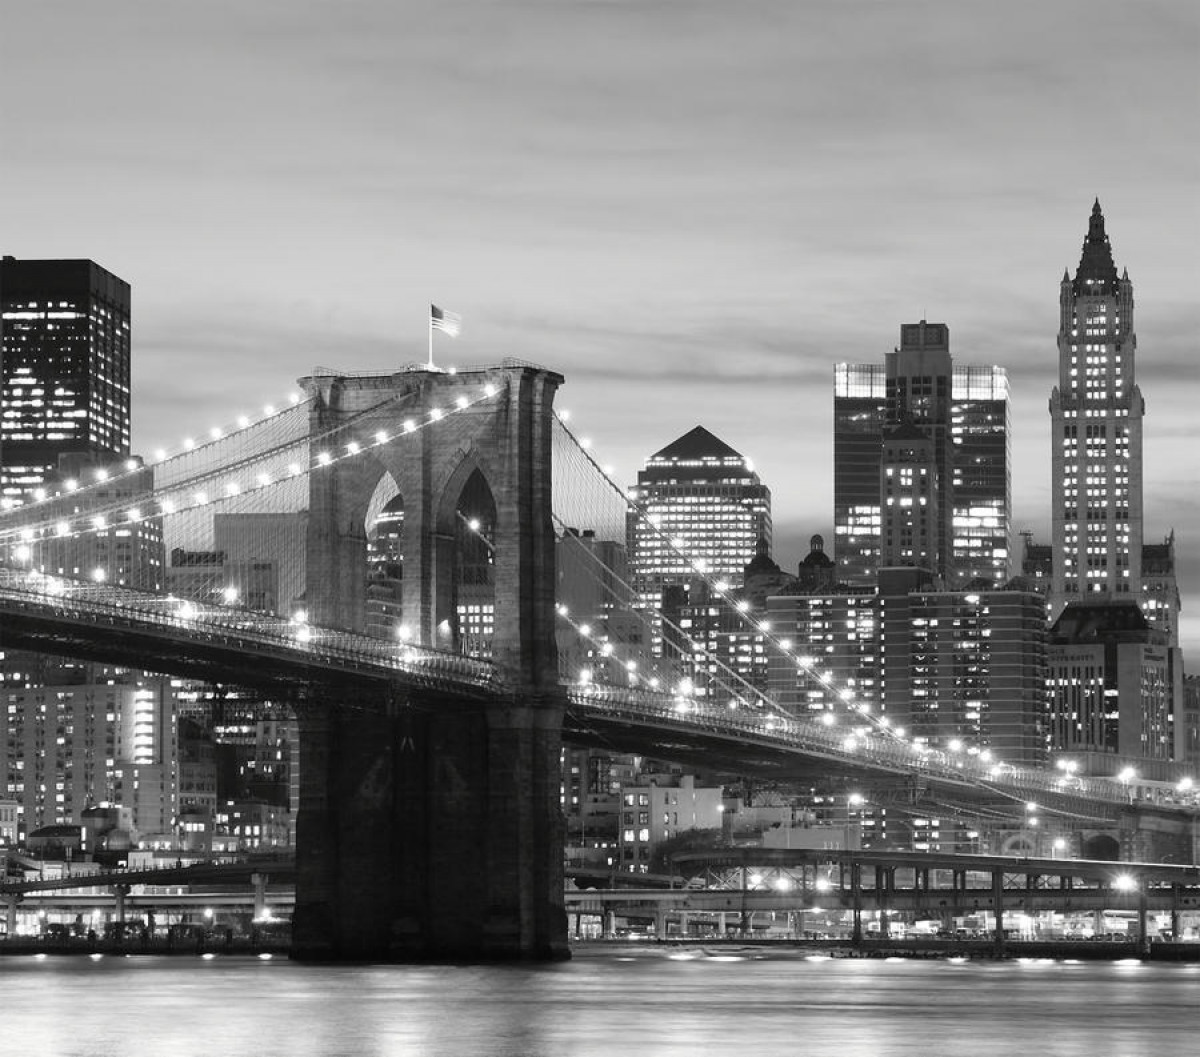 Rideau imprimé New York pont de Brooklyn illuminé photo en noir et blanc280x245 cm, 2 parts